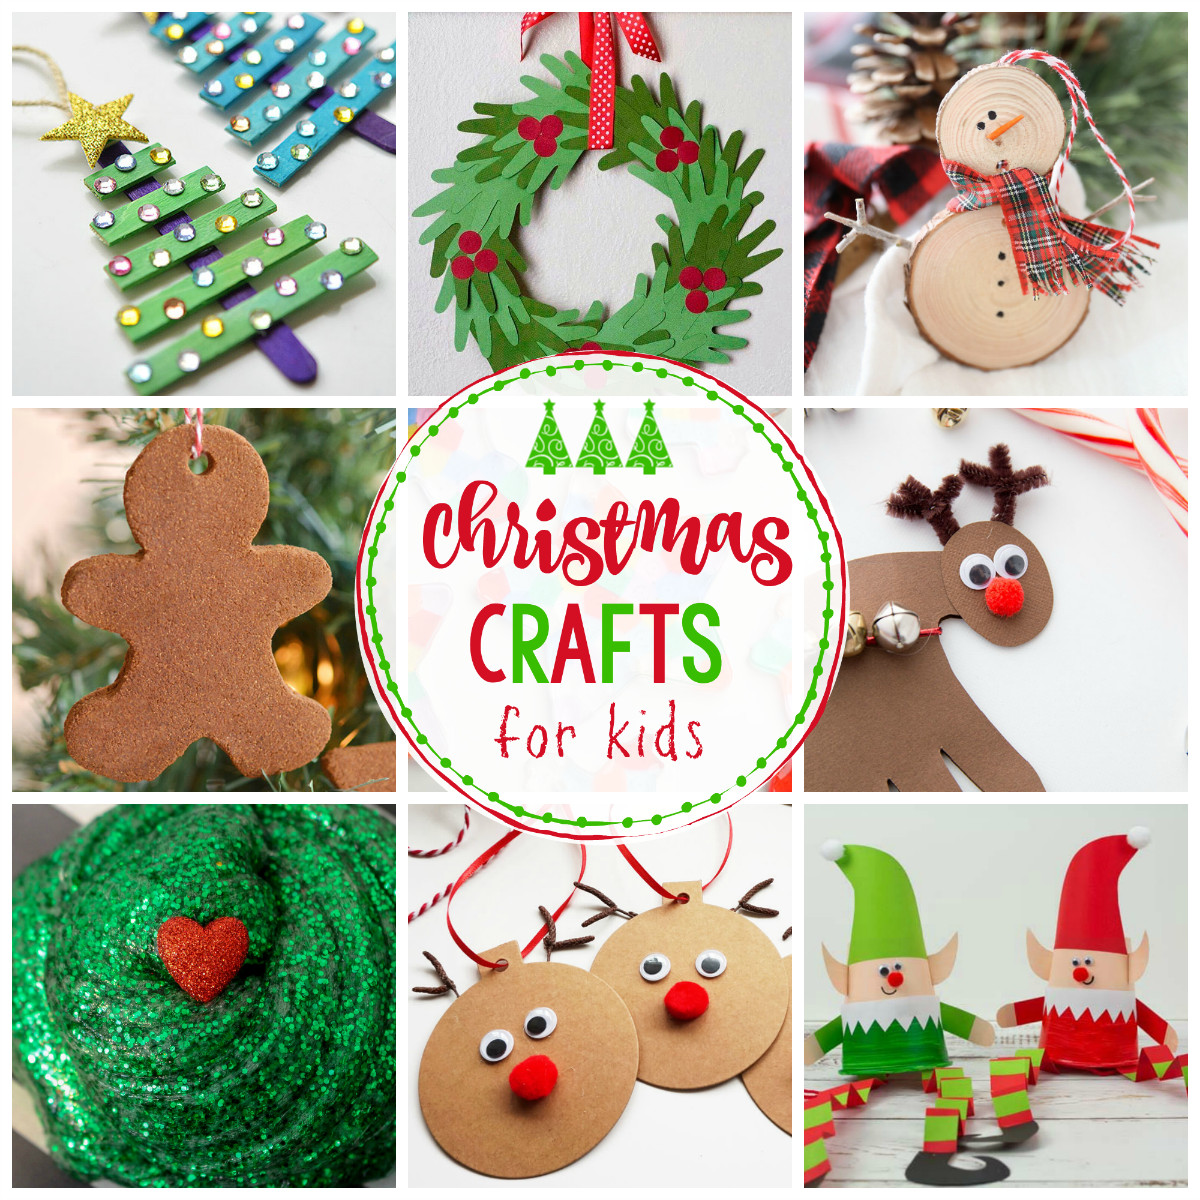 Best ideas about Crafts Ideas For Kids . Save or Pin 25 Easy Christmas Crafts for Kids Crazy Little Projects Now.